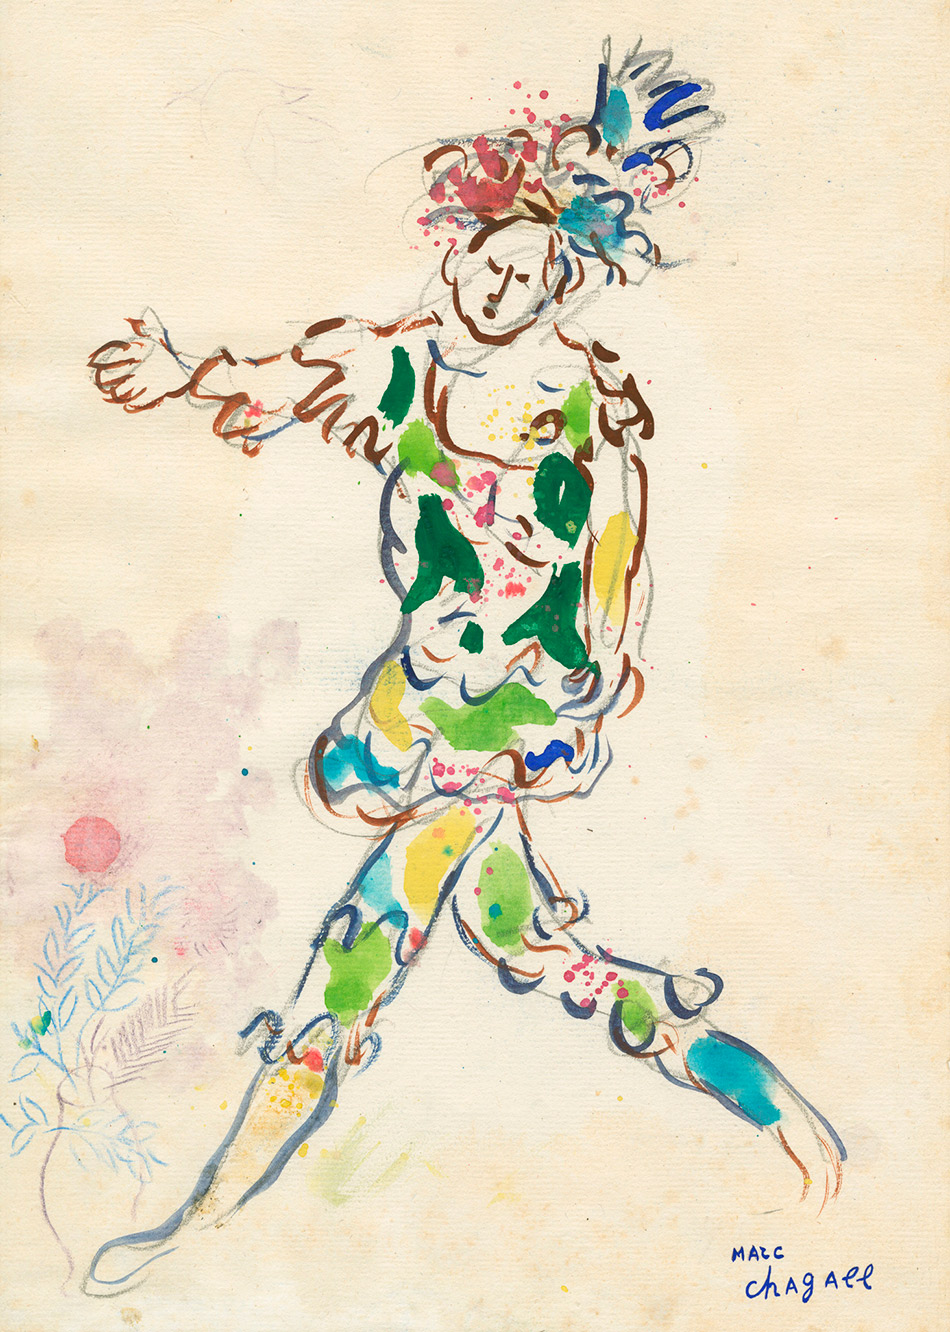 lacma_chagall-fantasies-for-the-stages_daphnis-and-chloe-costumes2_w